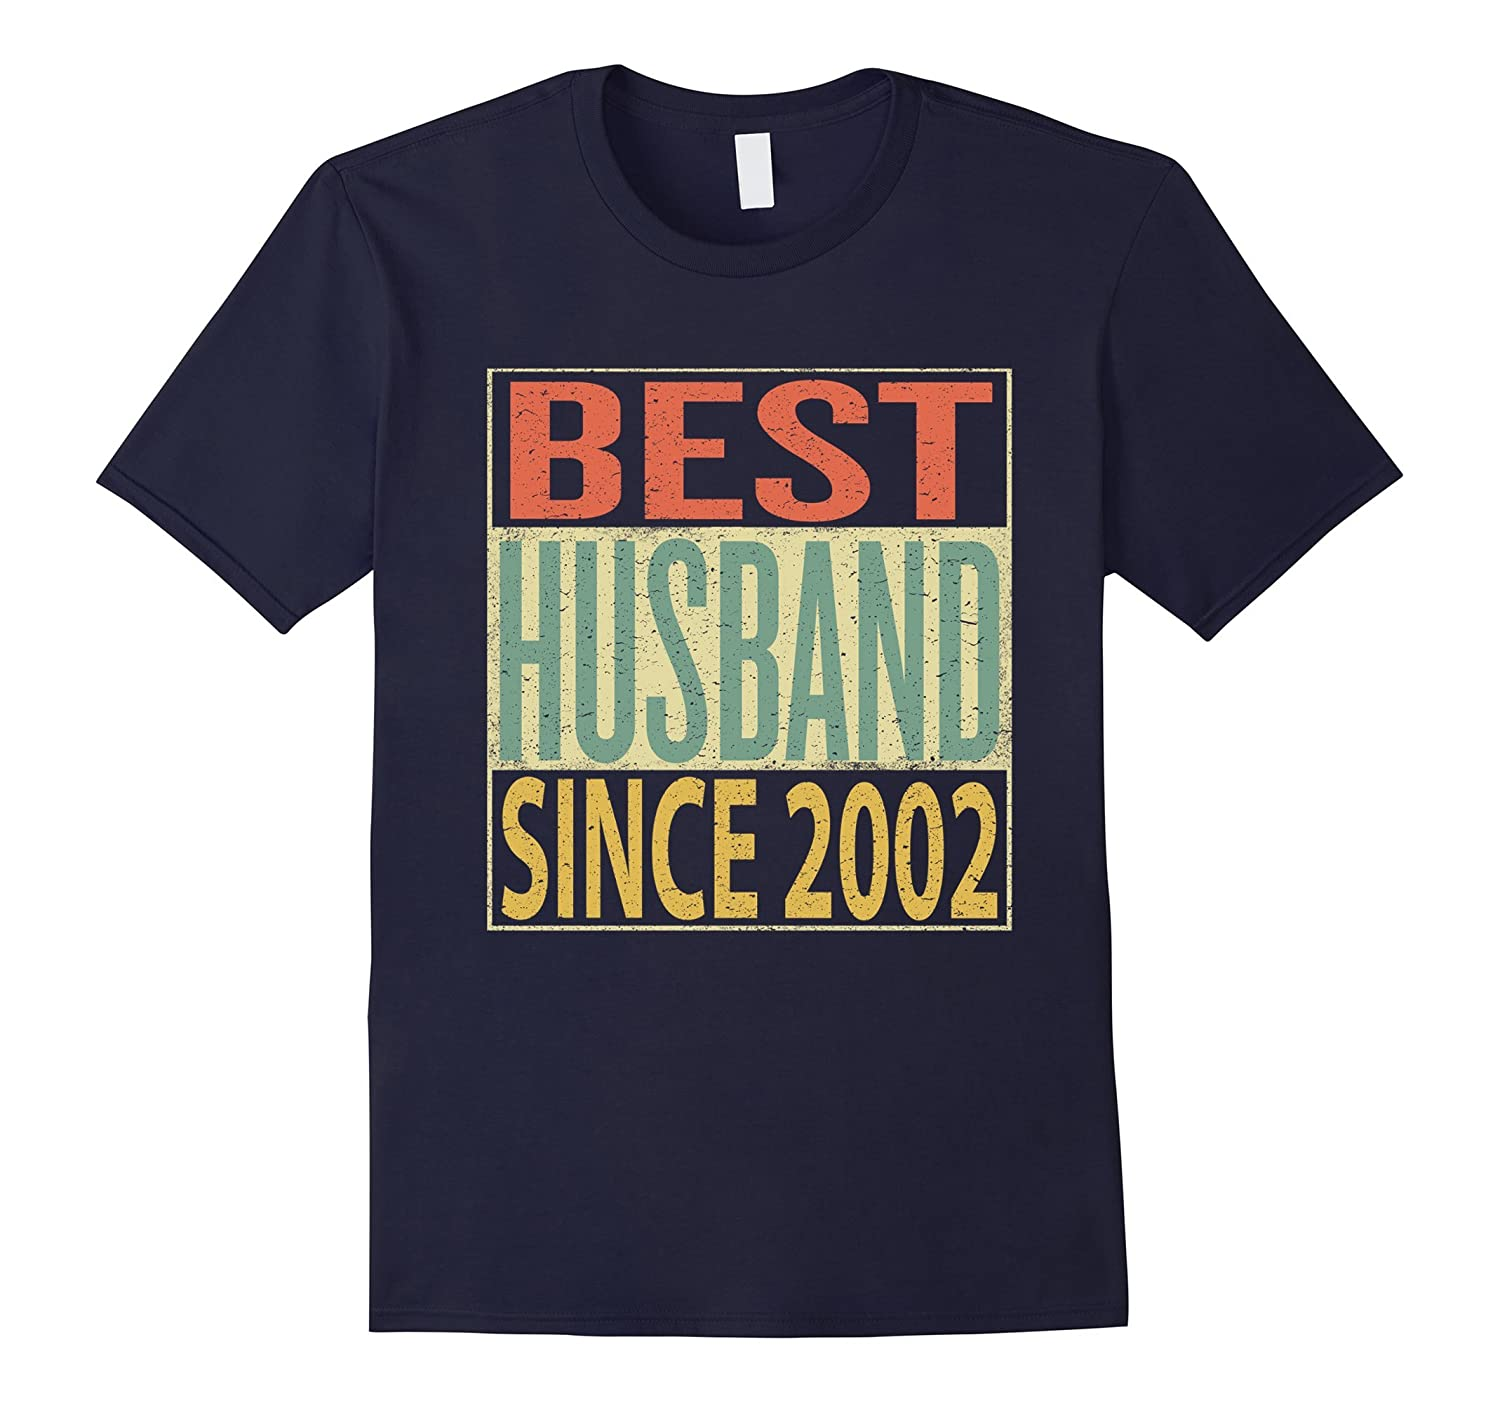 Mens Best Husband Since 2002 Shirt 15th Wedding Anniversary Gift-FL